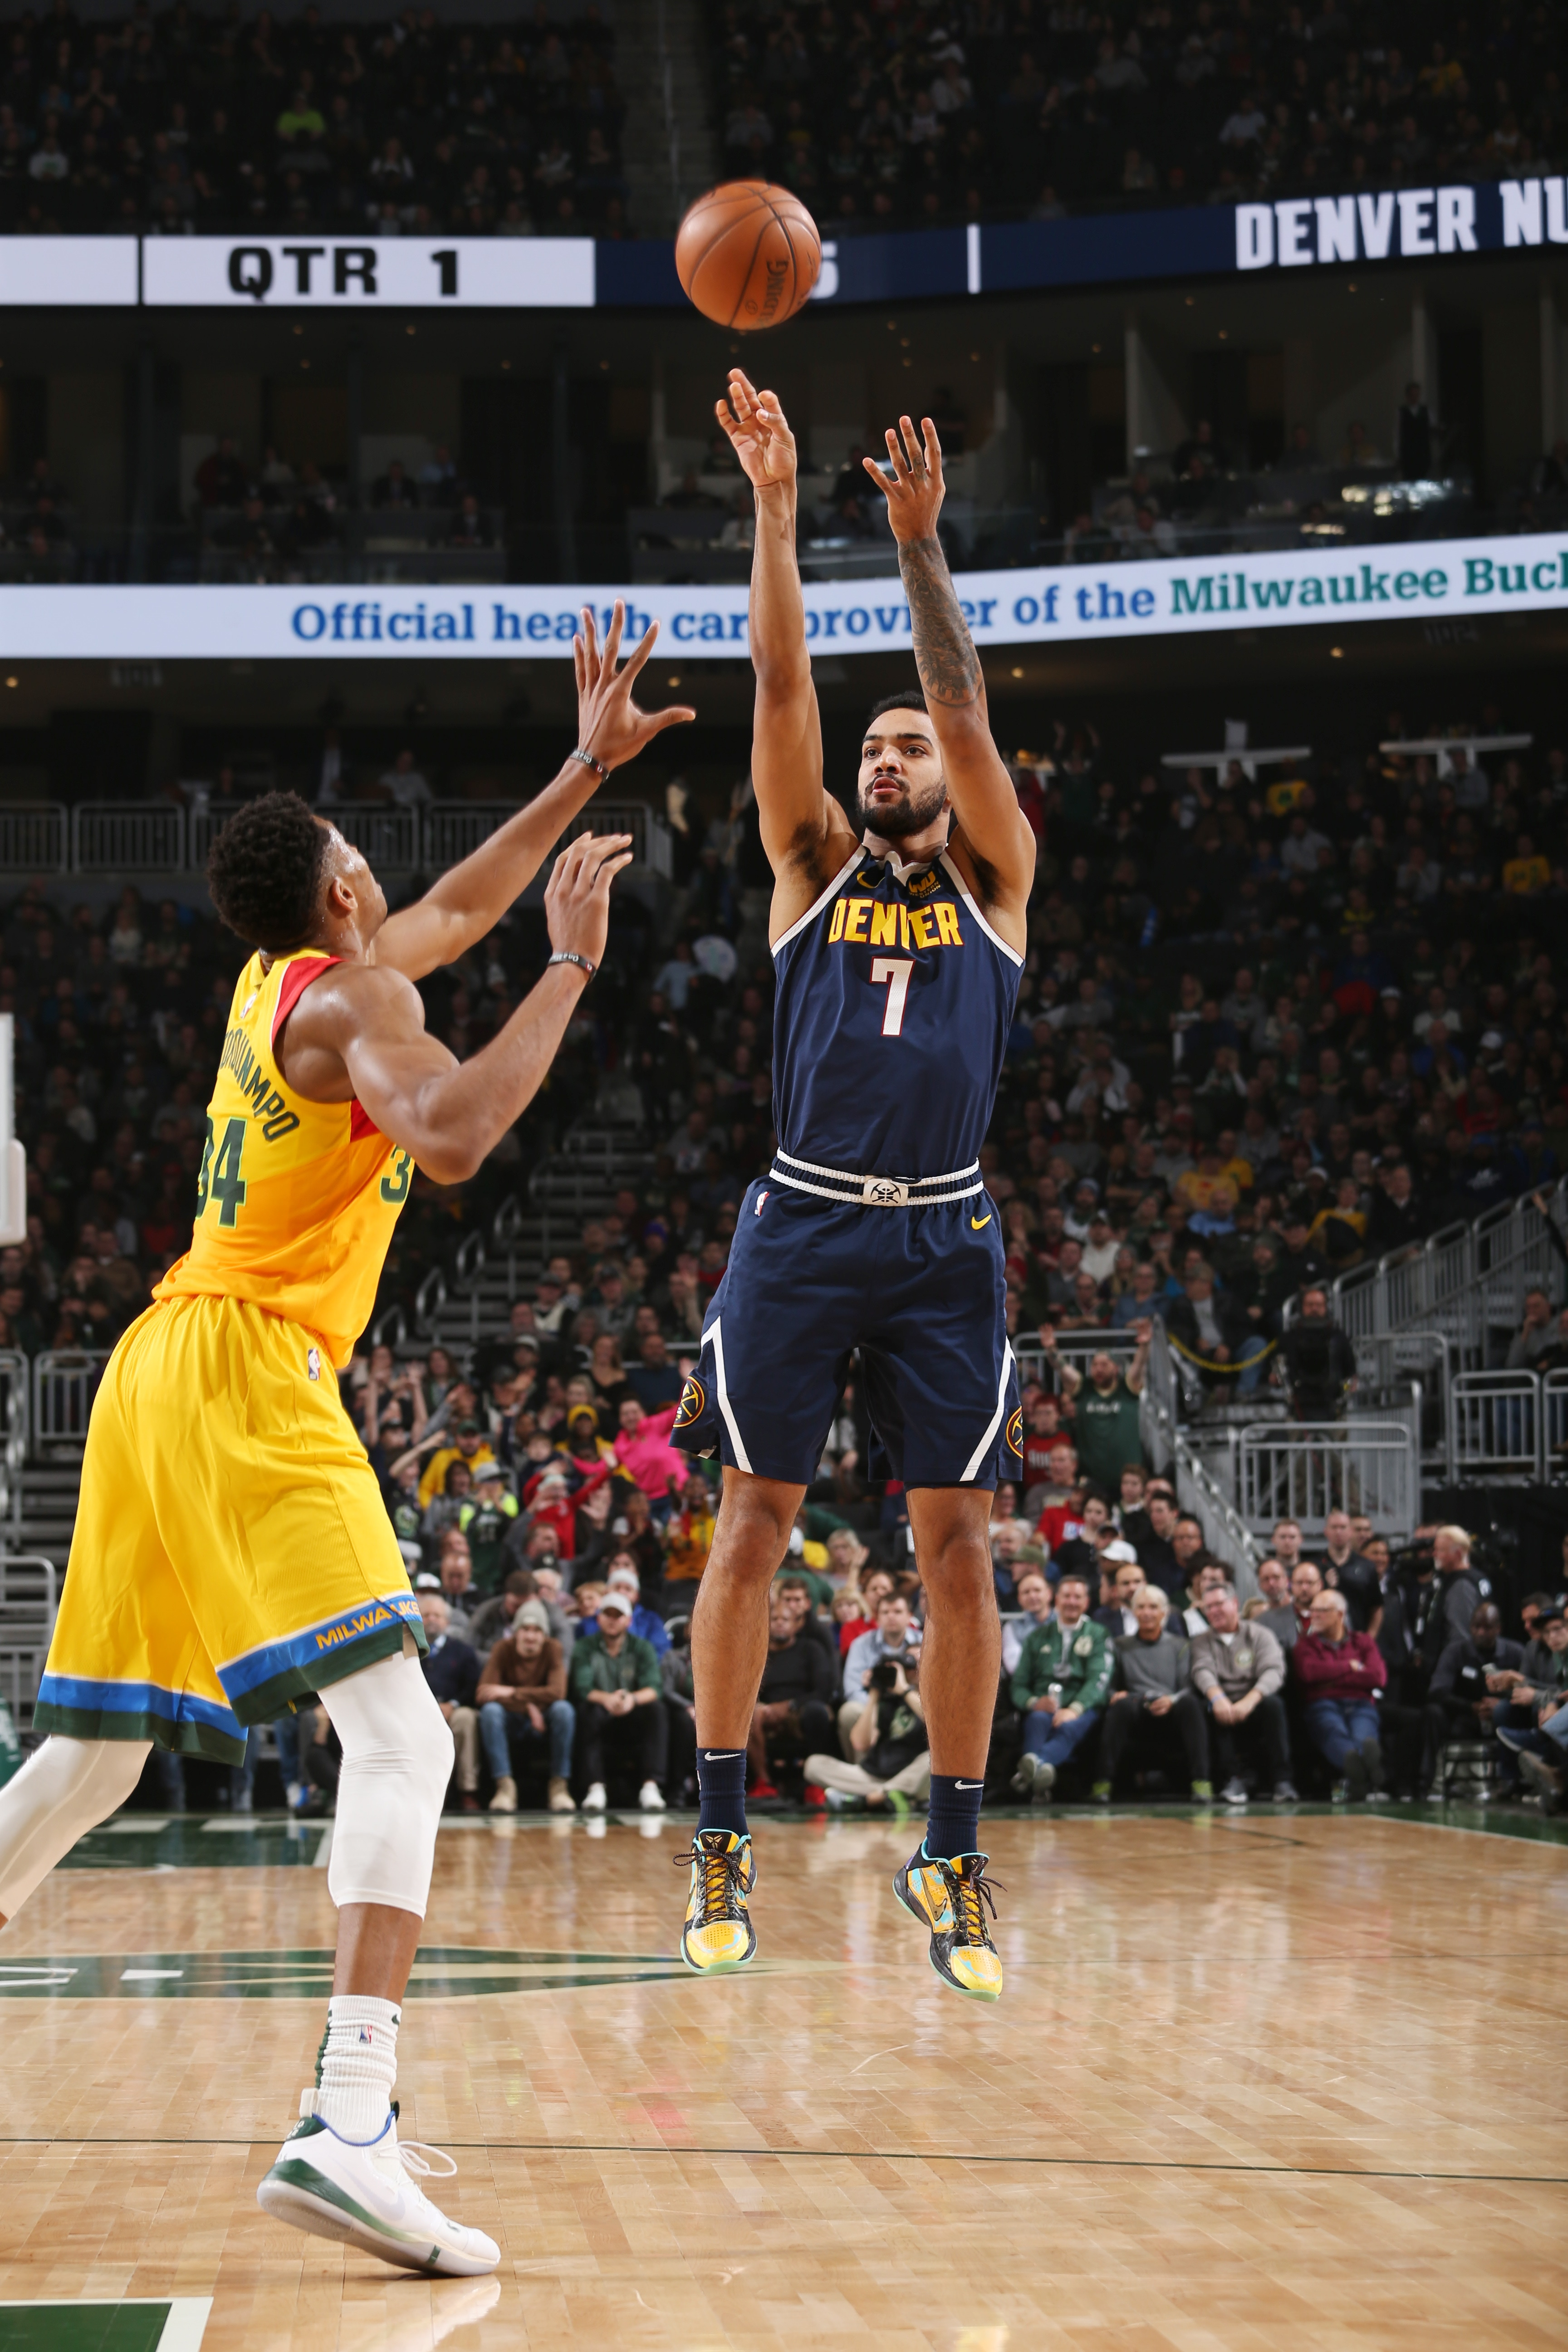 The Nuggets take on the Bucks in Milwaukee on Nov. 19, 2018.